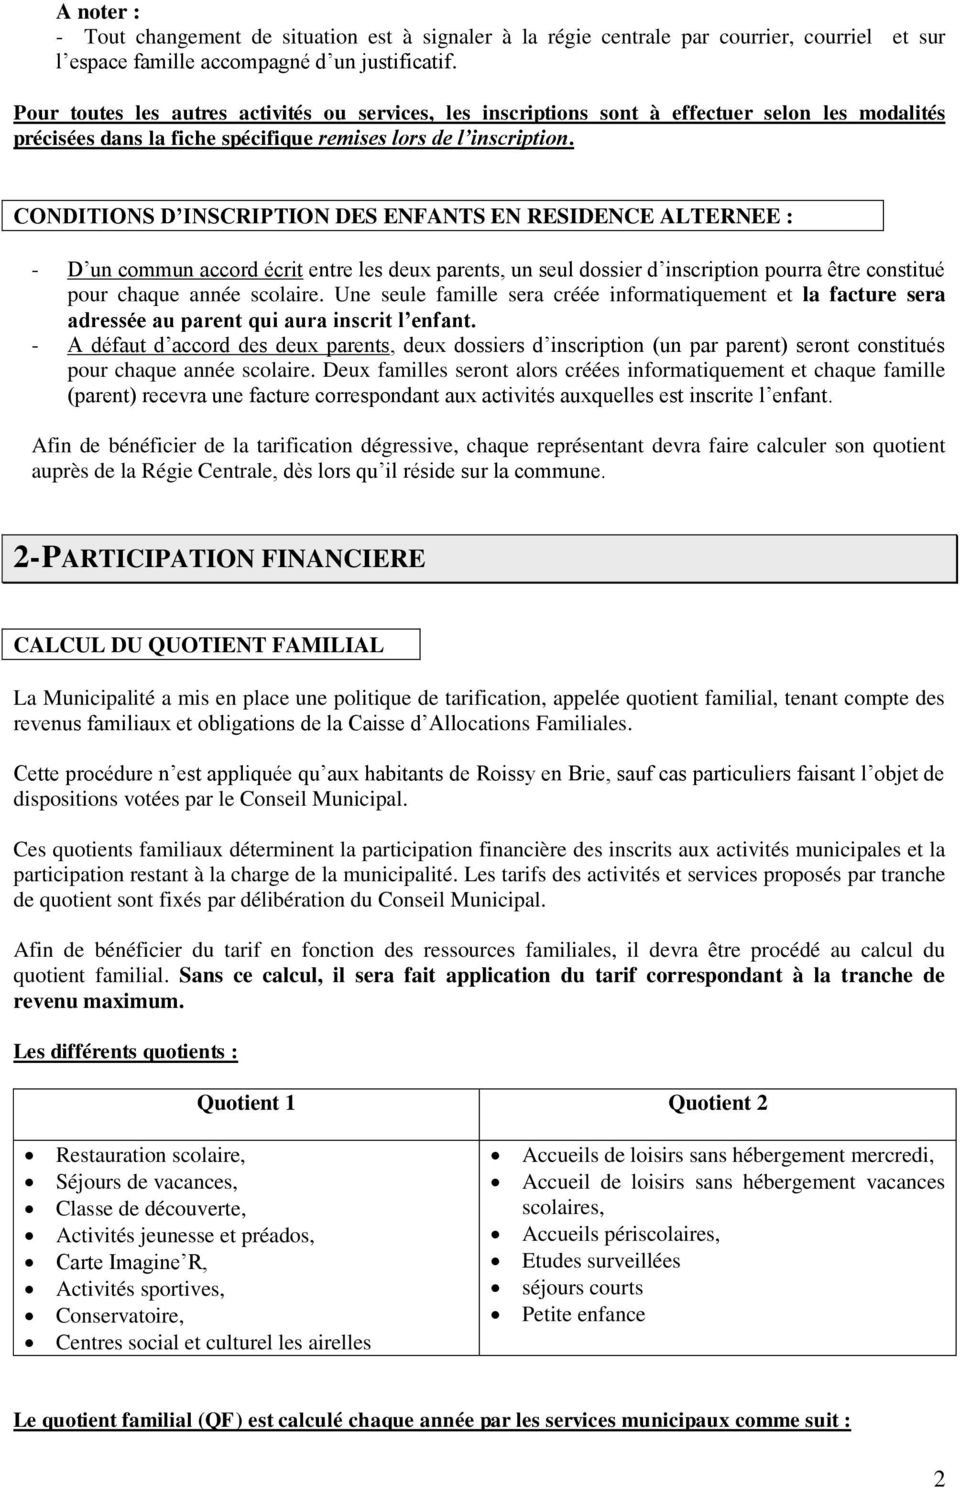 CONDITIONS D INSCRIPTION DES ENFANTS EN RESIDENCE ALTERNEE : - D un commun accord écrit entre les deux parents, un seul dossier d inscription pourra être constitué pour chaque année scolaire.